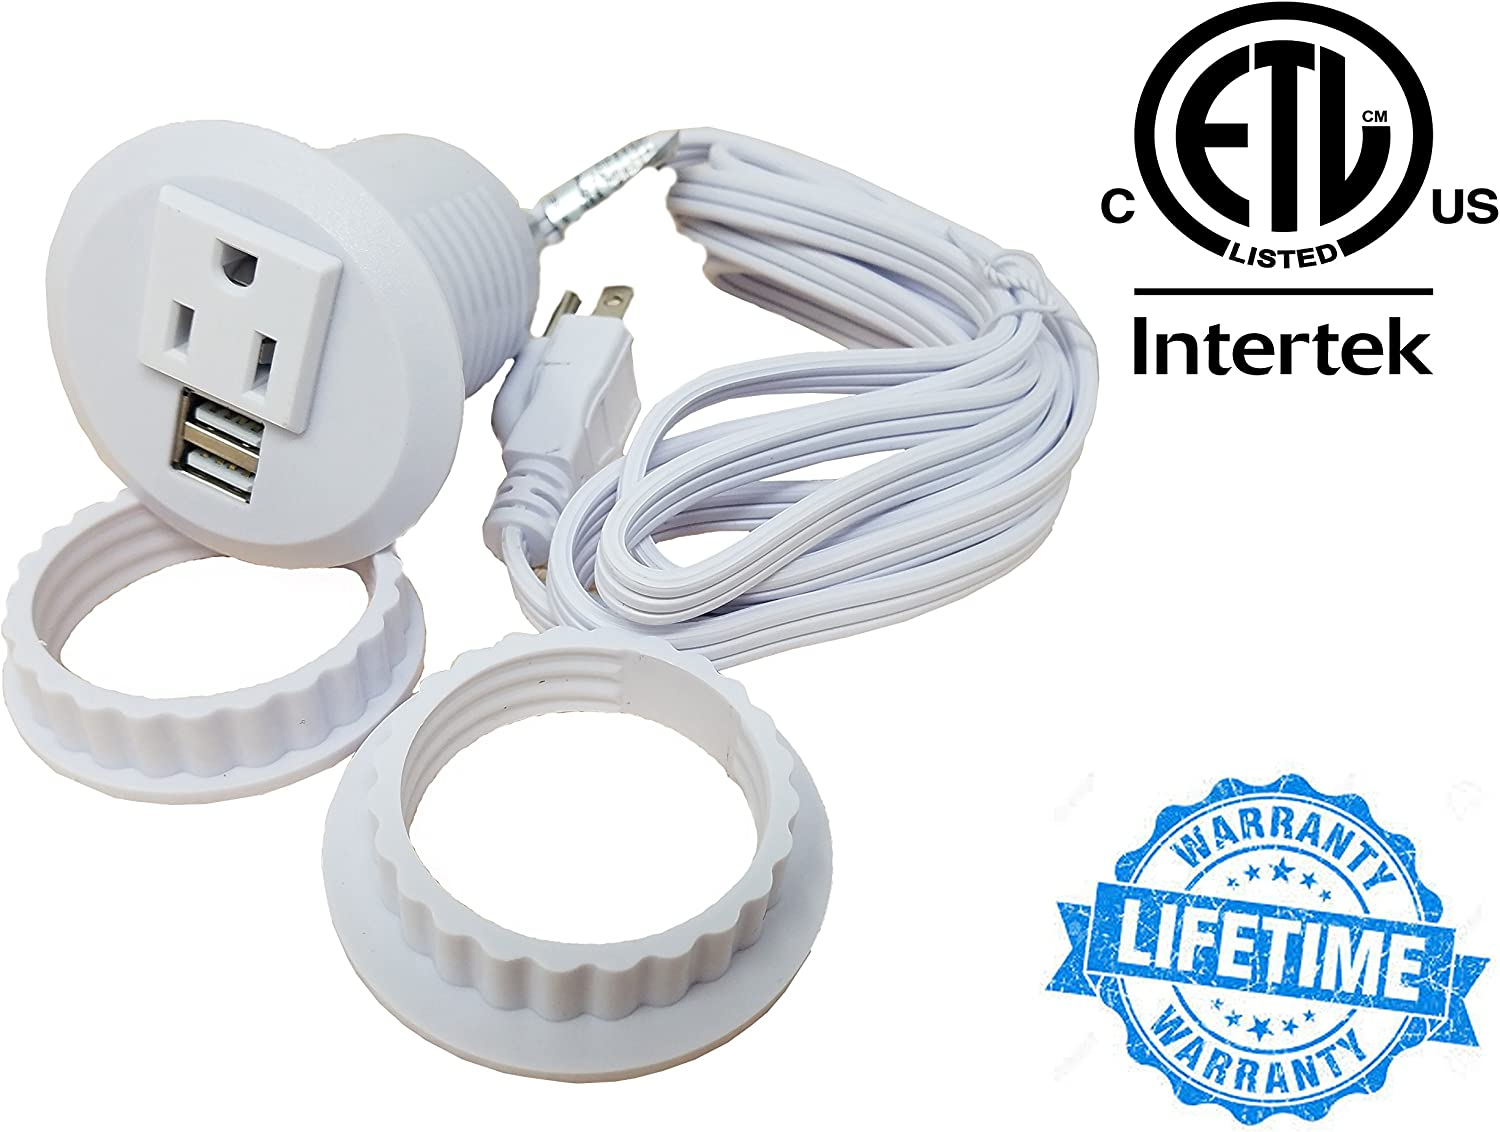 "Desktop Power Grommet Outlet Data Center, 2"" or 3"" Hole No Drilling Required, 1 Outlet W/ 2 USB Ports (White- 2"" (No Drilling Required- 6ft Power Cord))"